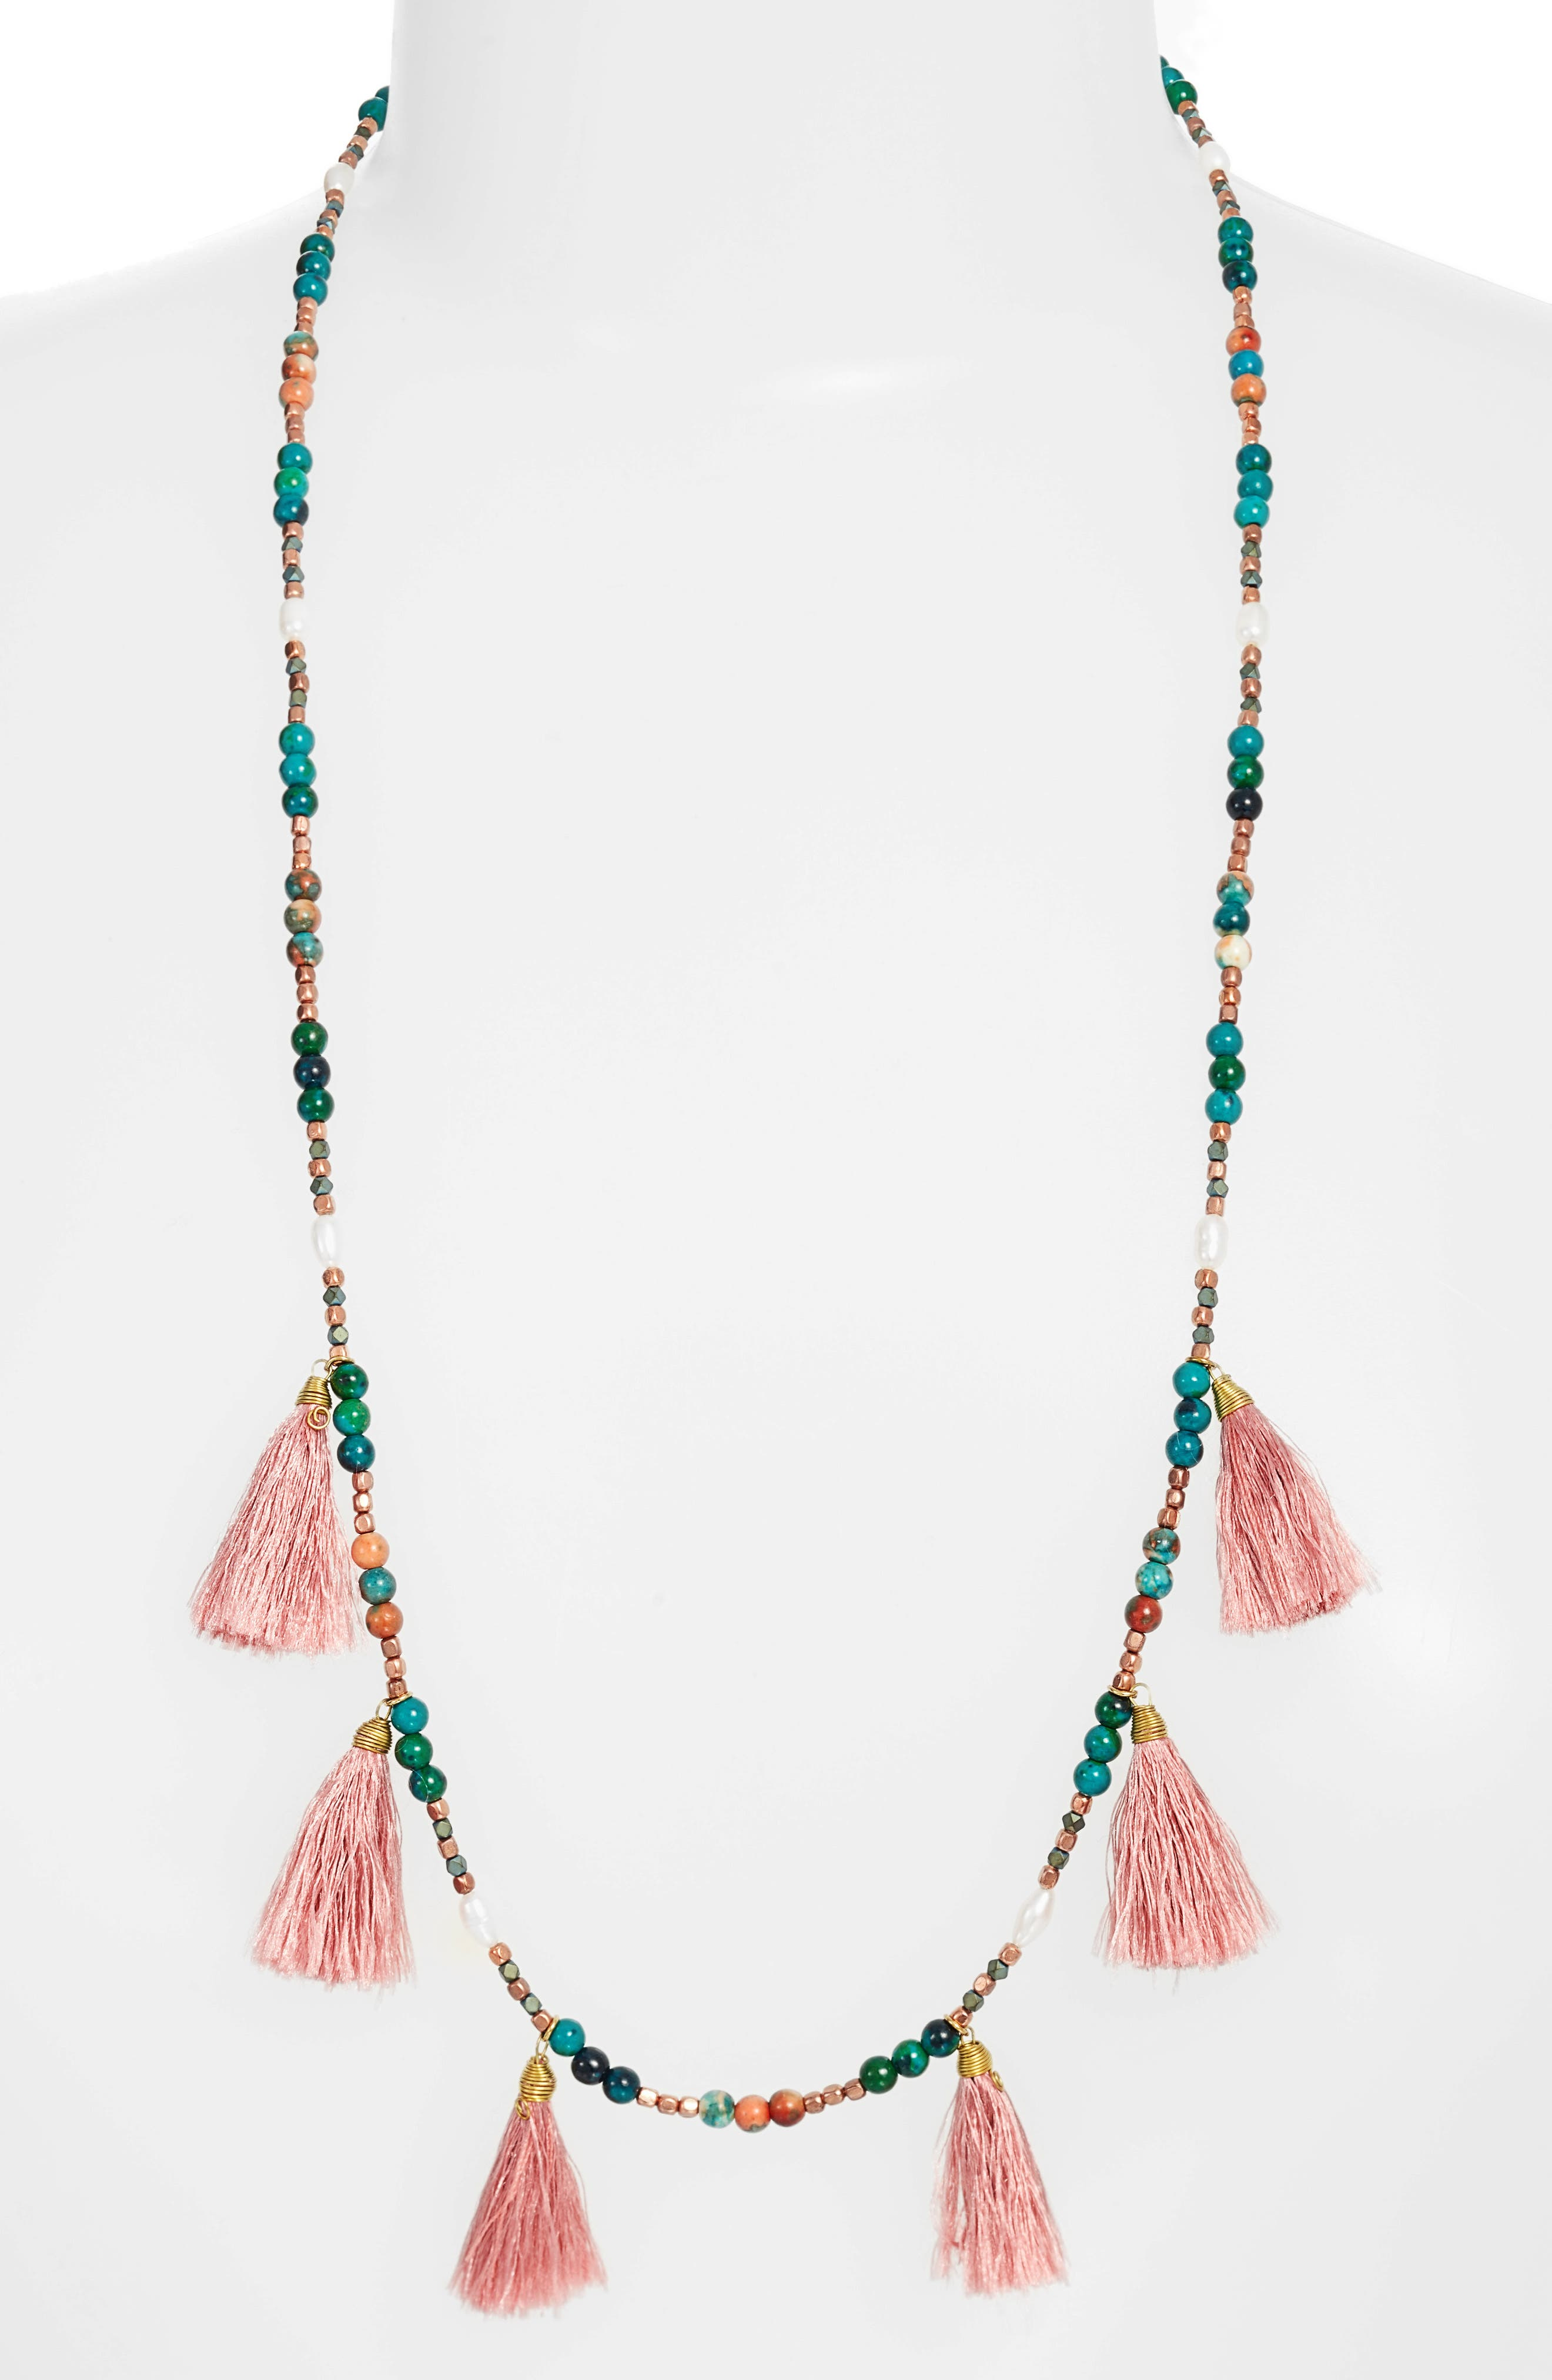 Tiny Tassel Beaded Necklace,                             Main thumbnail 1, color,                             Teal